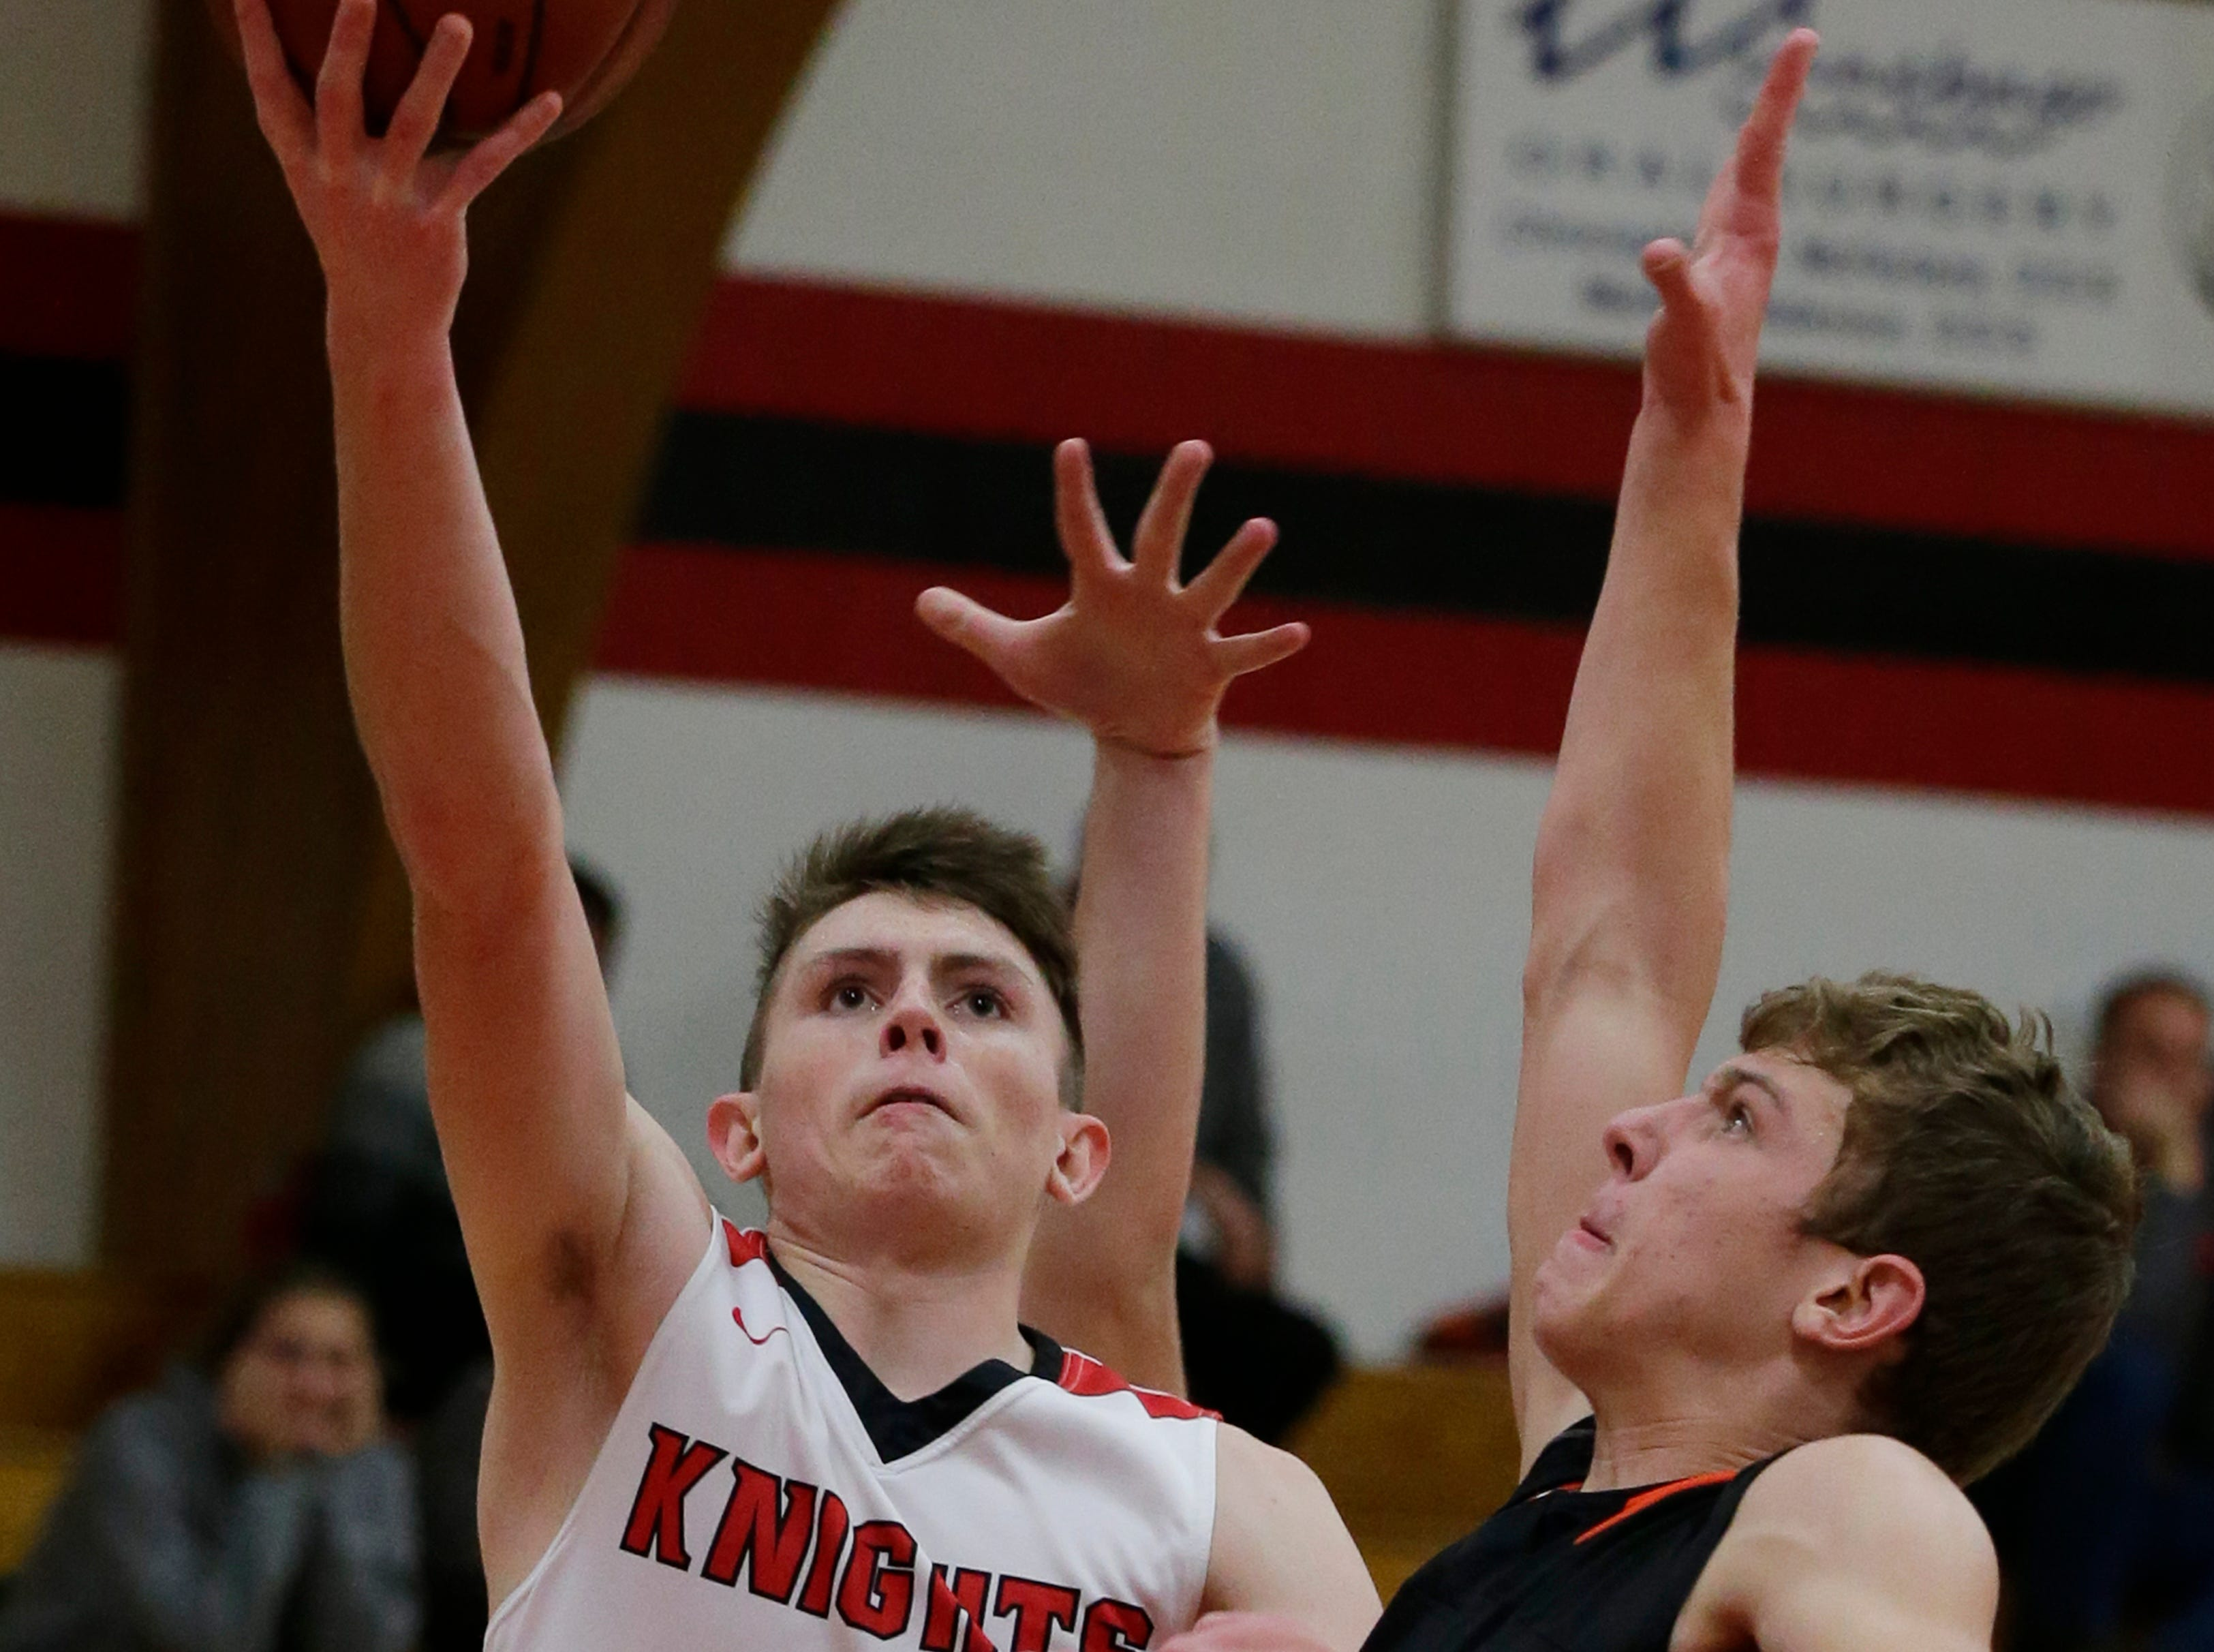 Lourdes Academy's Hayden Jones puts up a shot past Oakfield's Grant Bass.  Lourdes Academy Knights played Oakfield Oaks in boys basketball Tuesday, Dec. 4, 2018, at Lourdes Castle in Oshkosh, Wis.